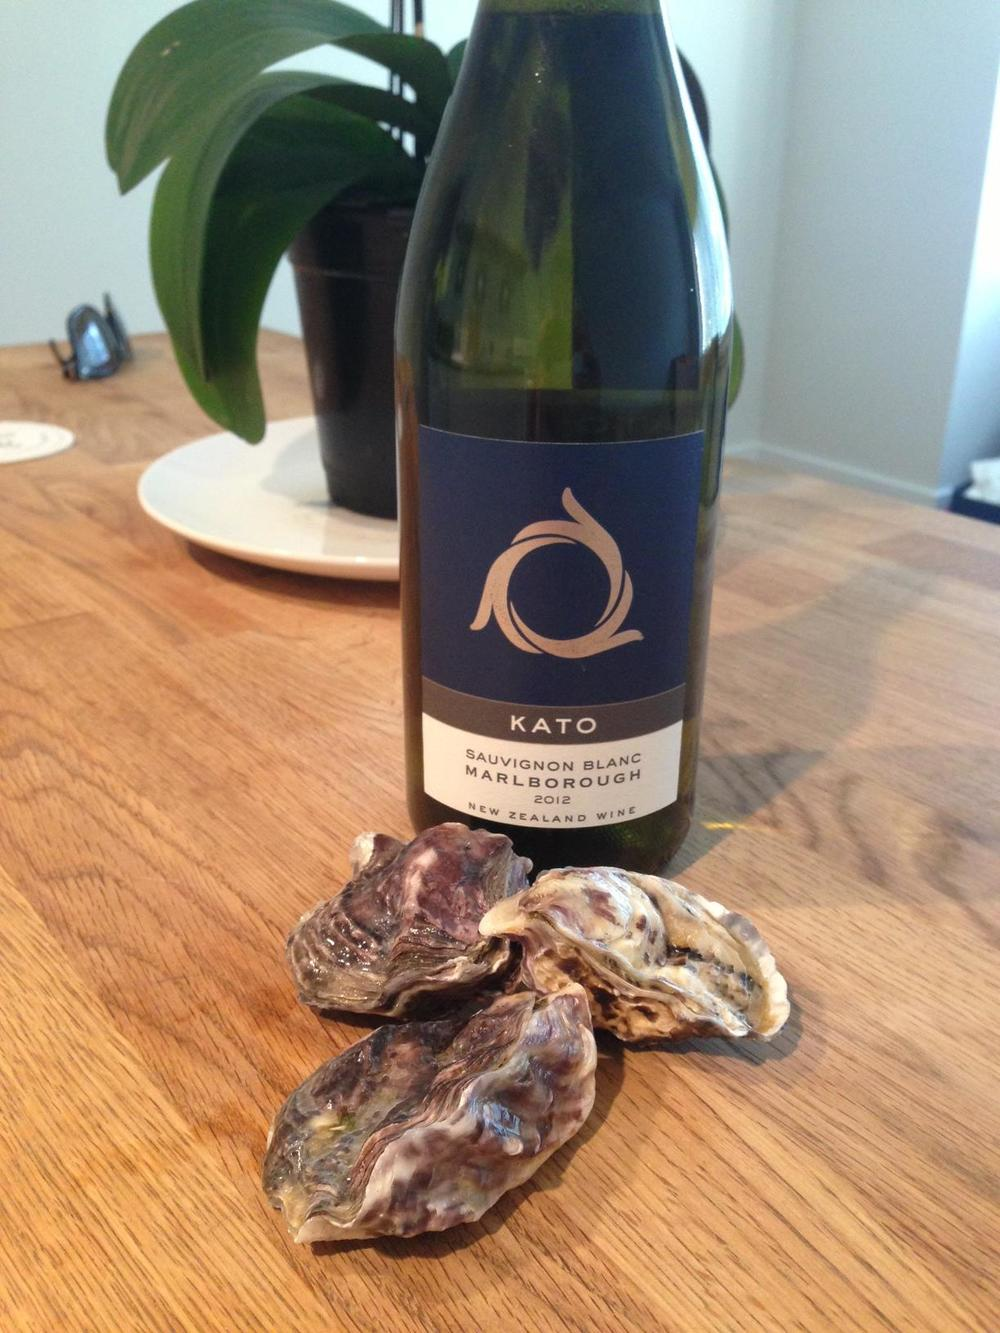 Kato Sauvignon Blanc pairs well with the Kaipara Oyster